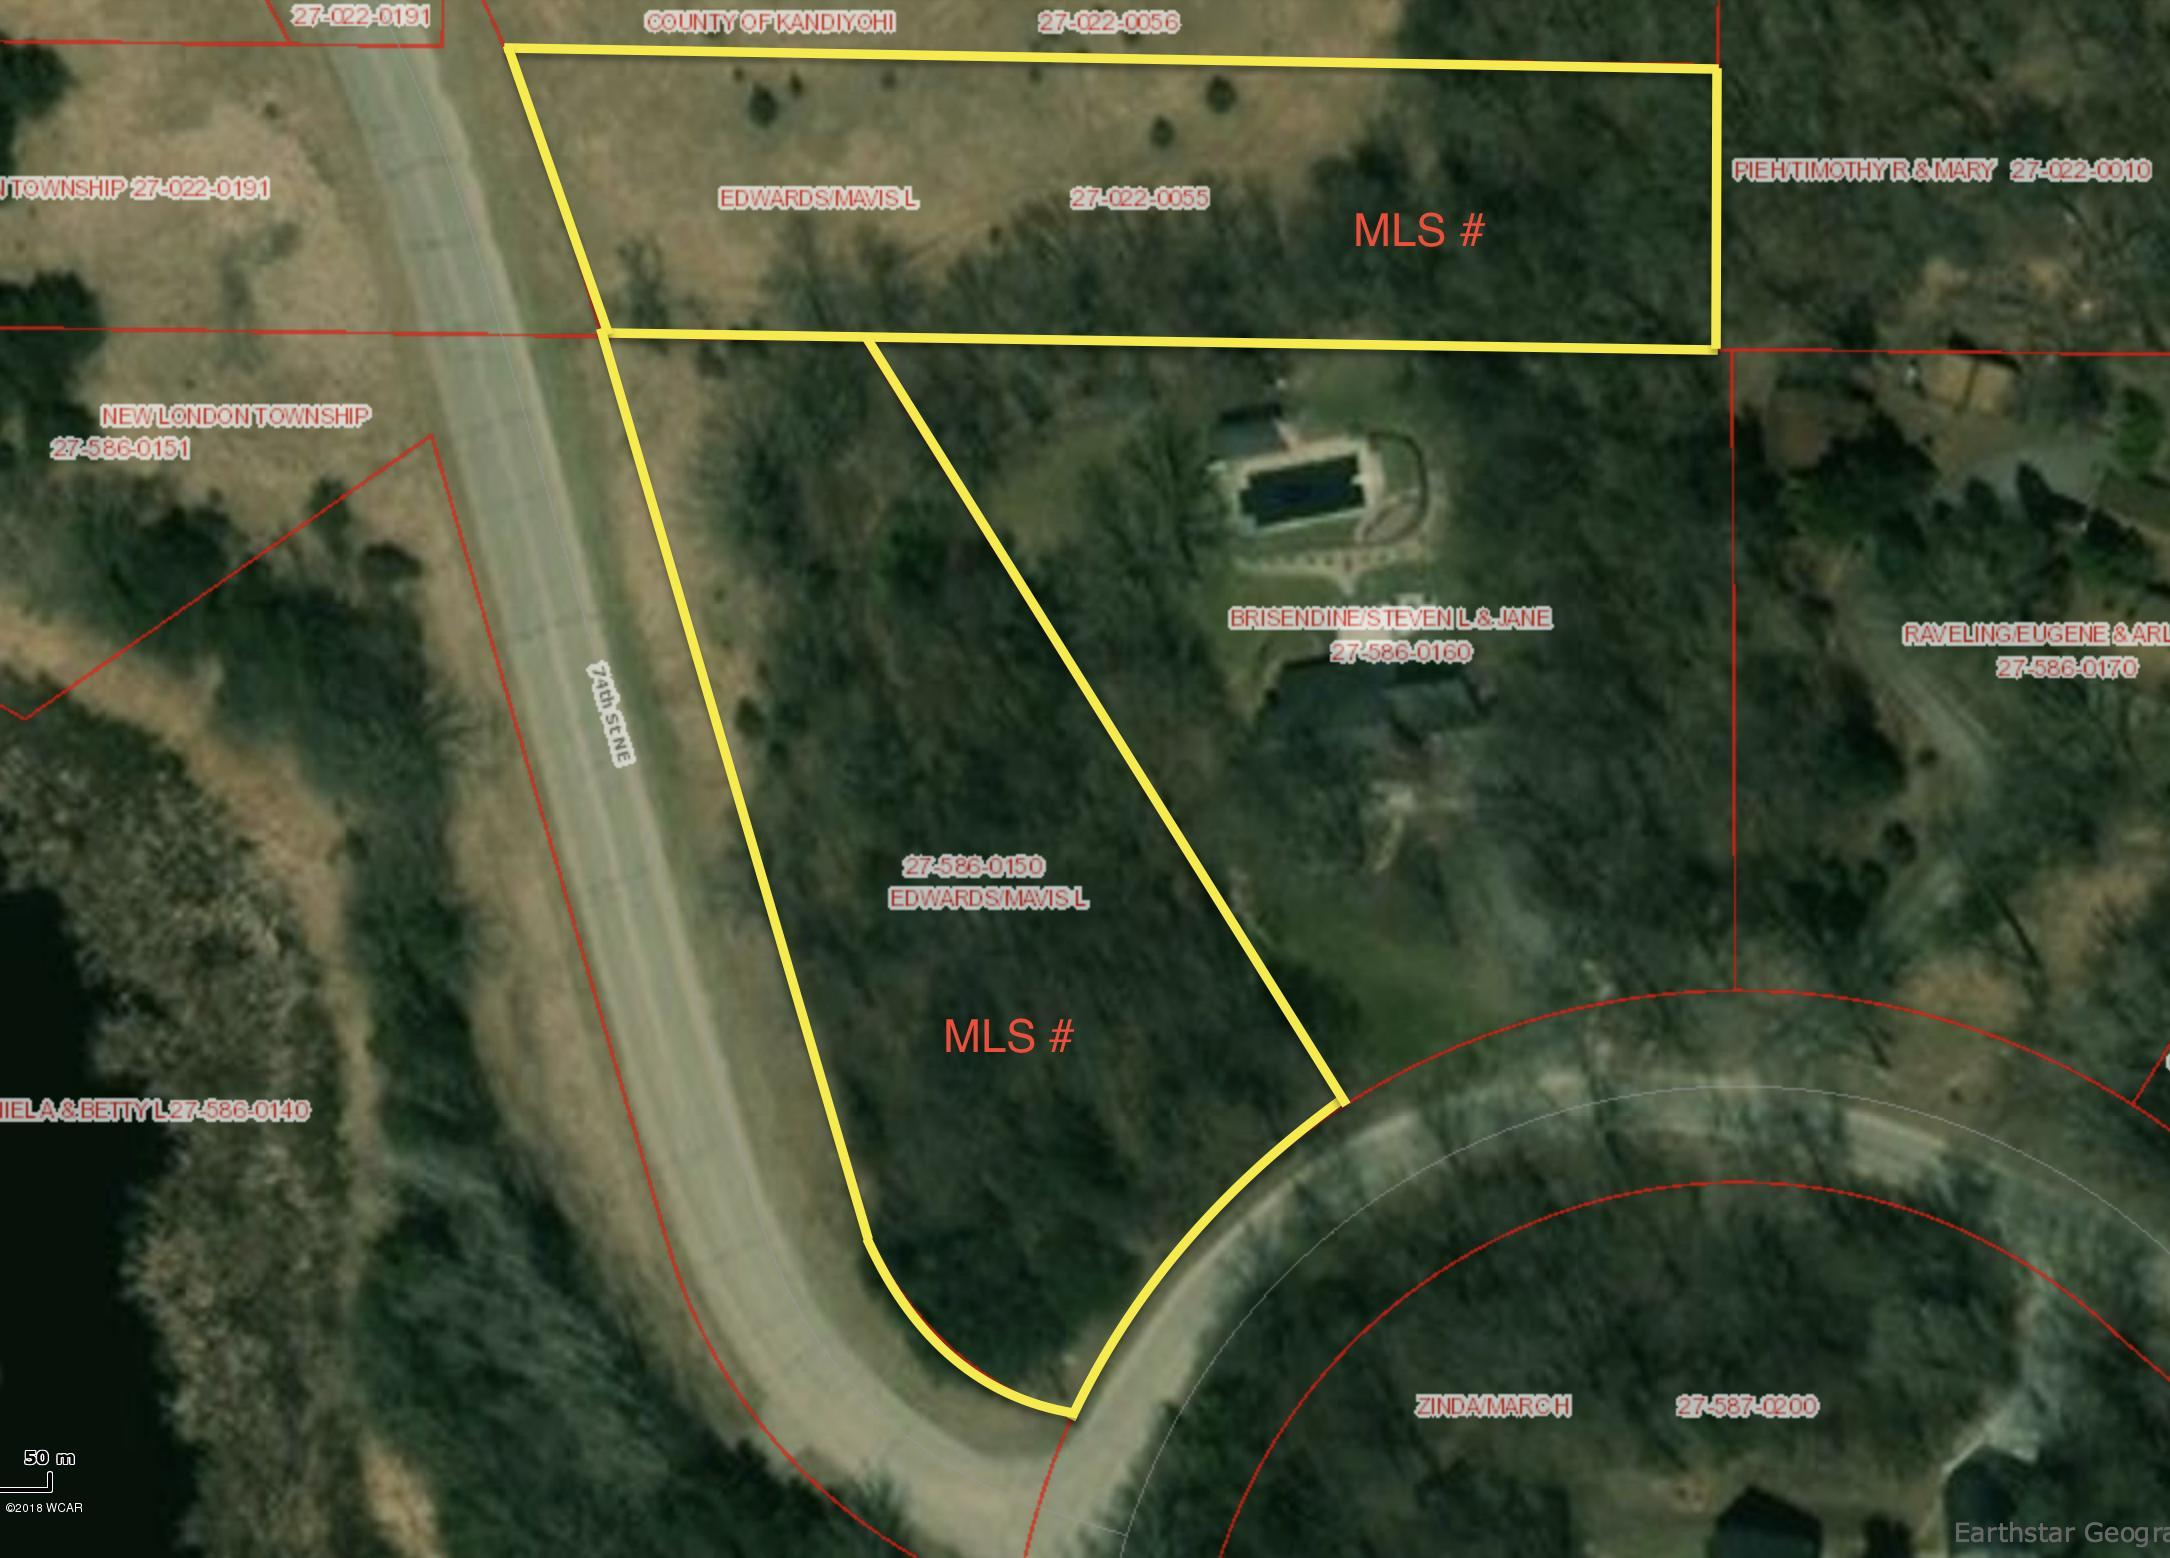 7484 158th Ave Avenue,Spicer,Residential Land,158th Ave Avenue,6031454